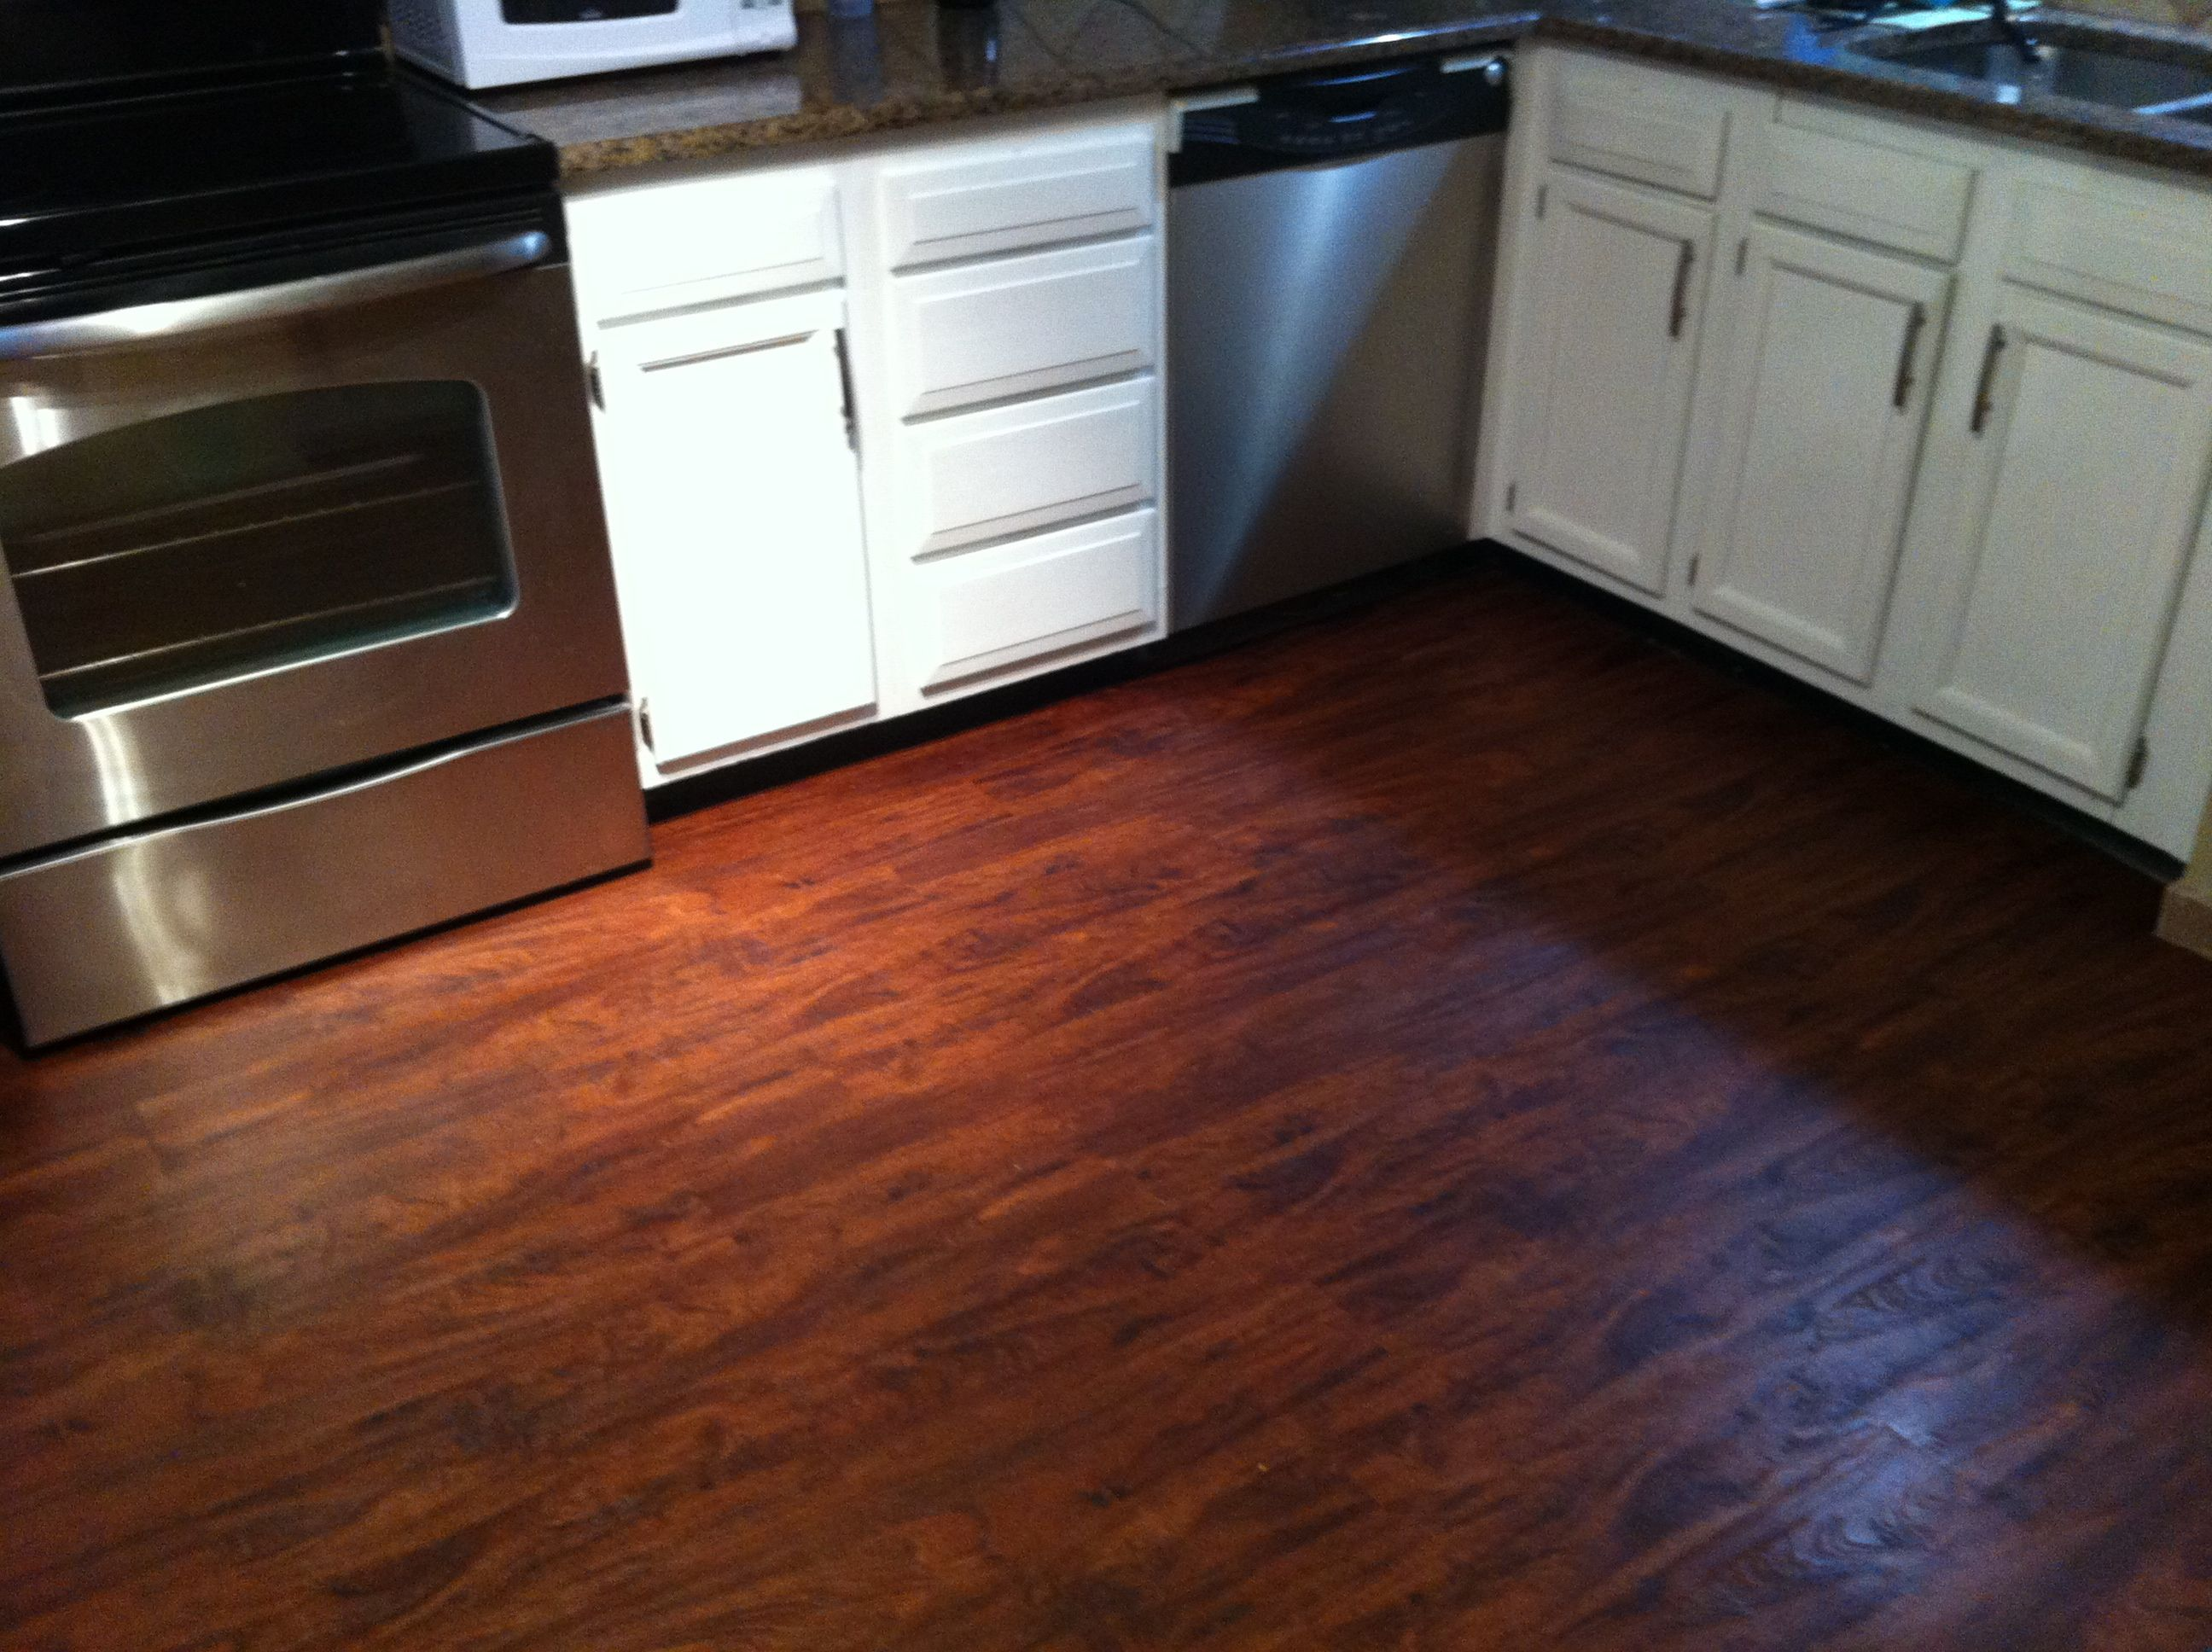 New Allure Cherry Plank Flooring In My Kitchen Can T Believe How Excellent It Turned Out Waterproof Flooring Flooring Plank Flooring